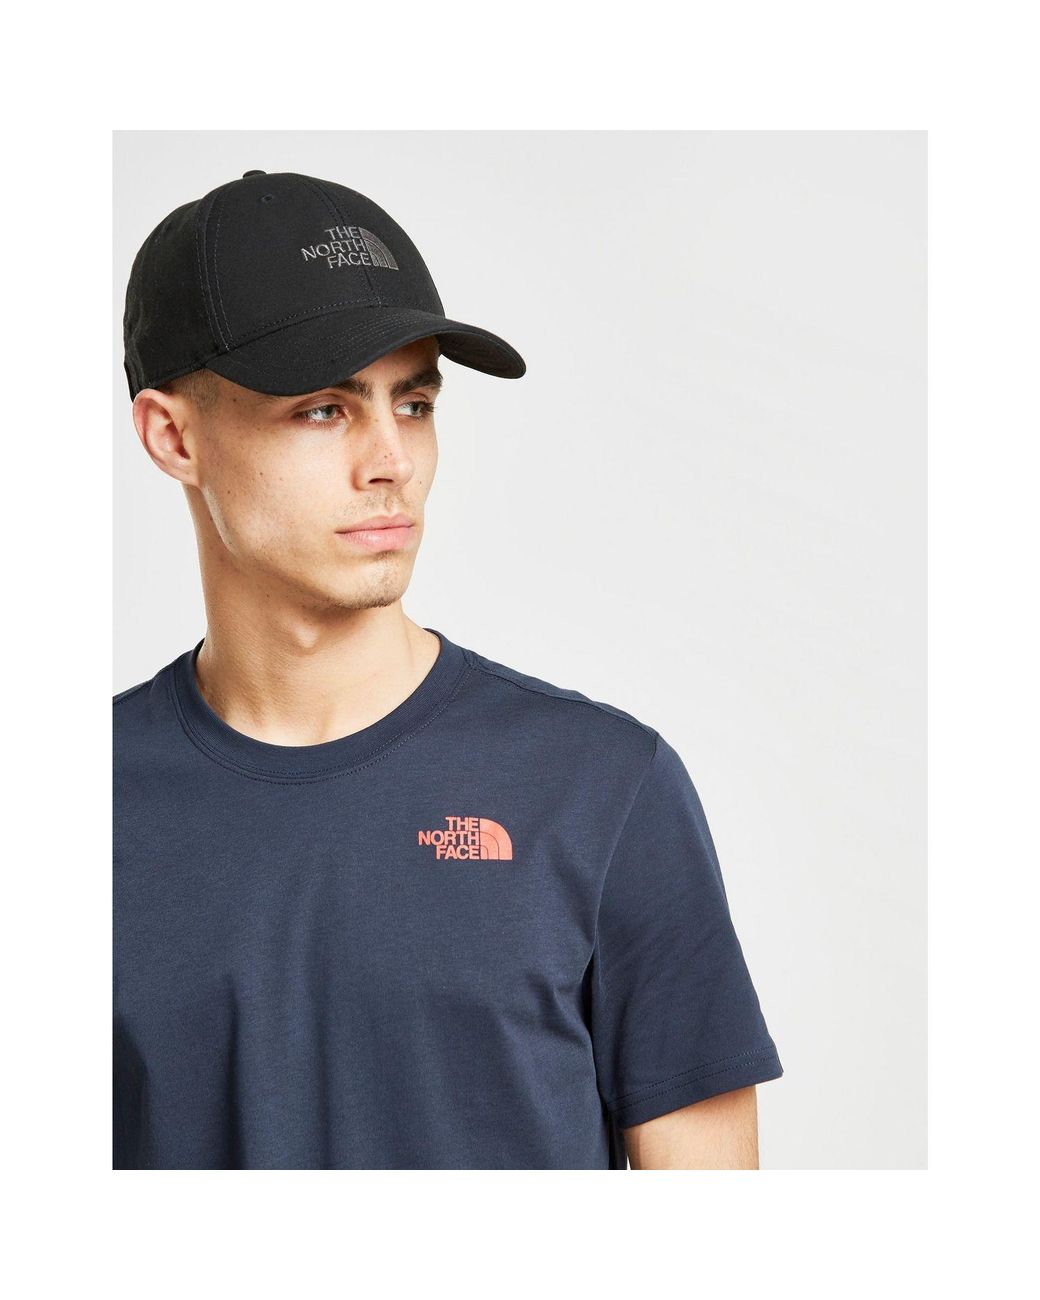 36dd1d949bf Long-Touch to Zoom. Long-Touch to Zoom. 1  2  3  4  5. The North Face - Black  66 Classic Cap ...